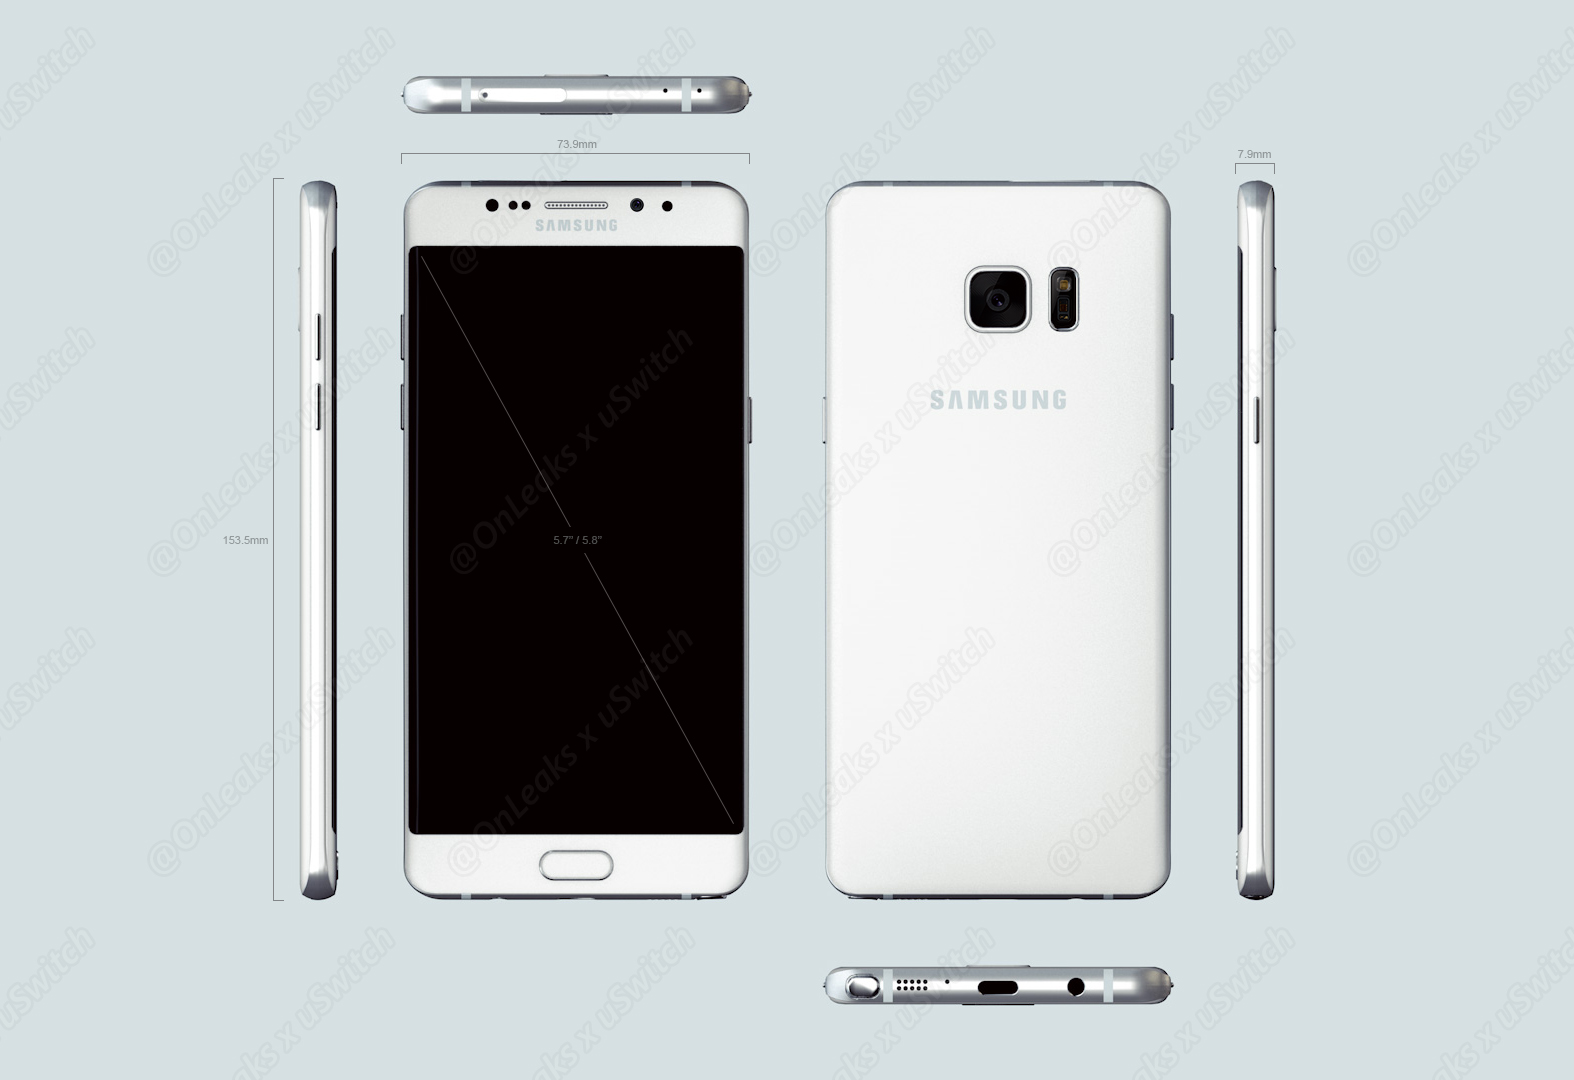 Samsung-Galaxy-Note-6-00